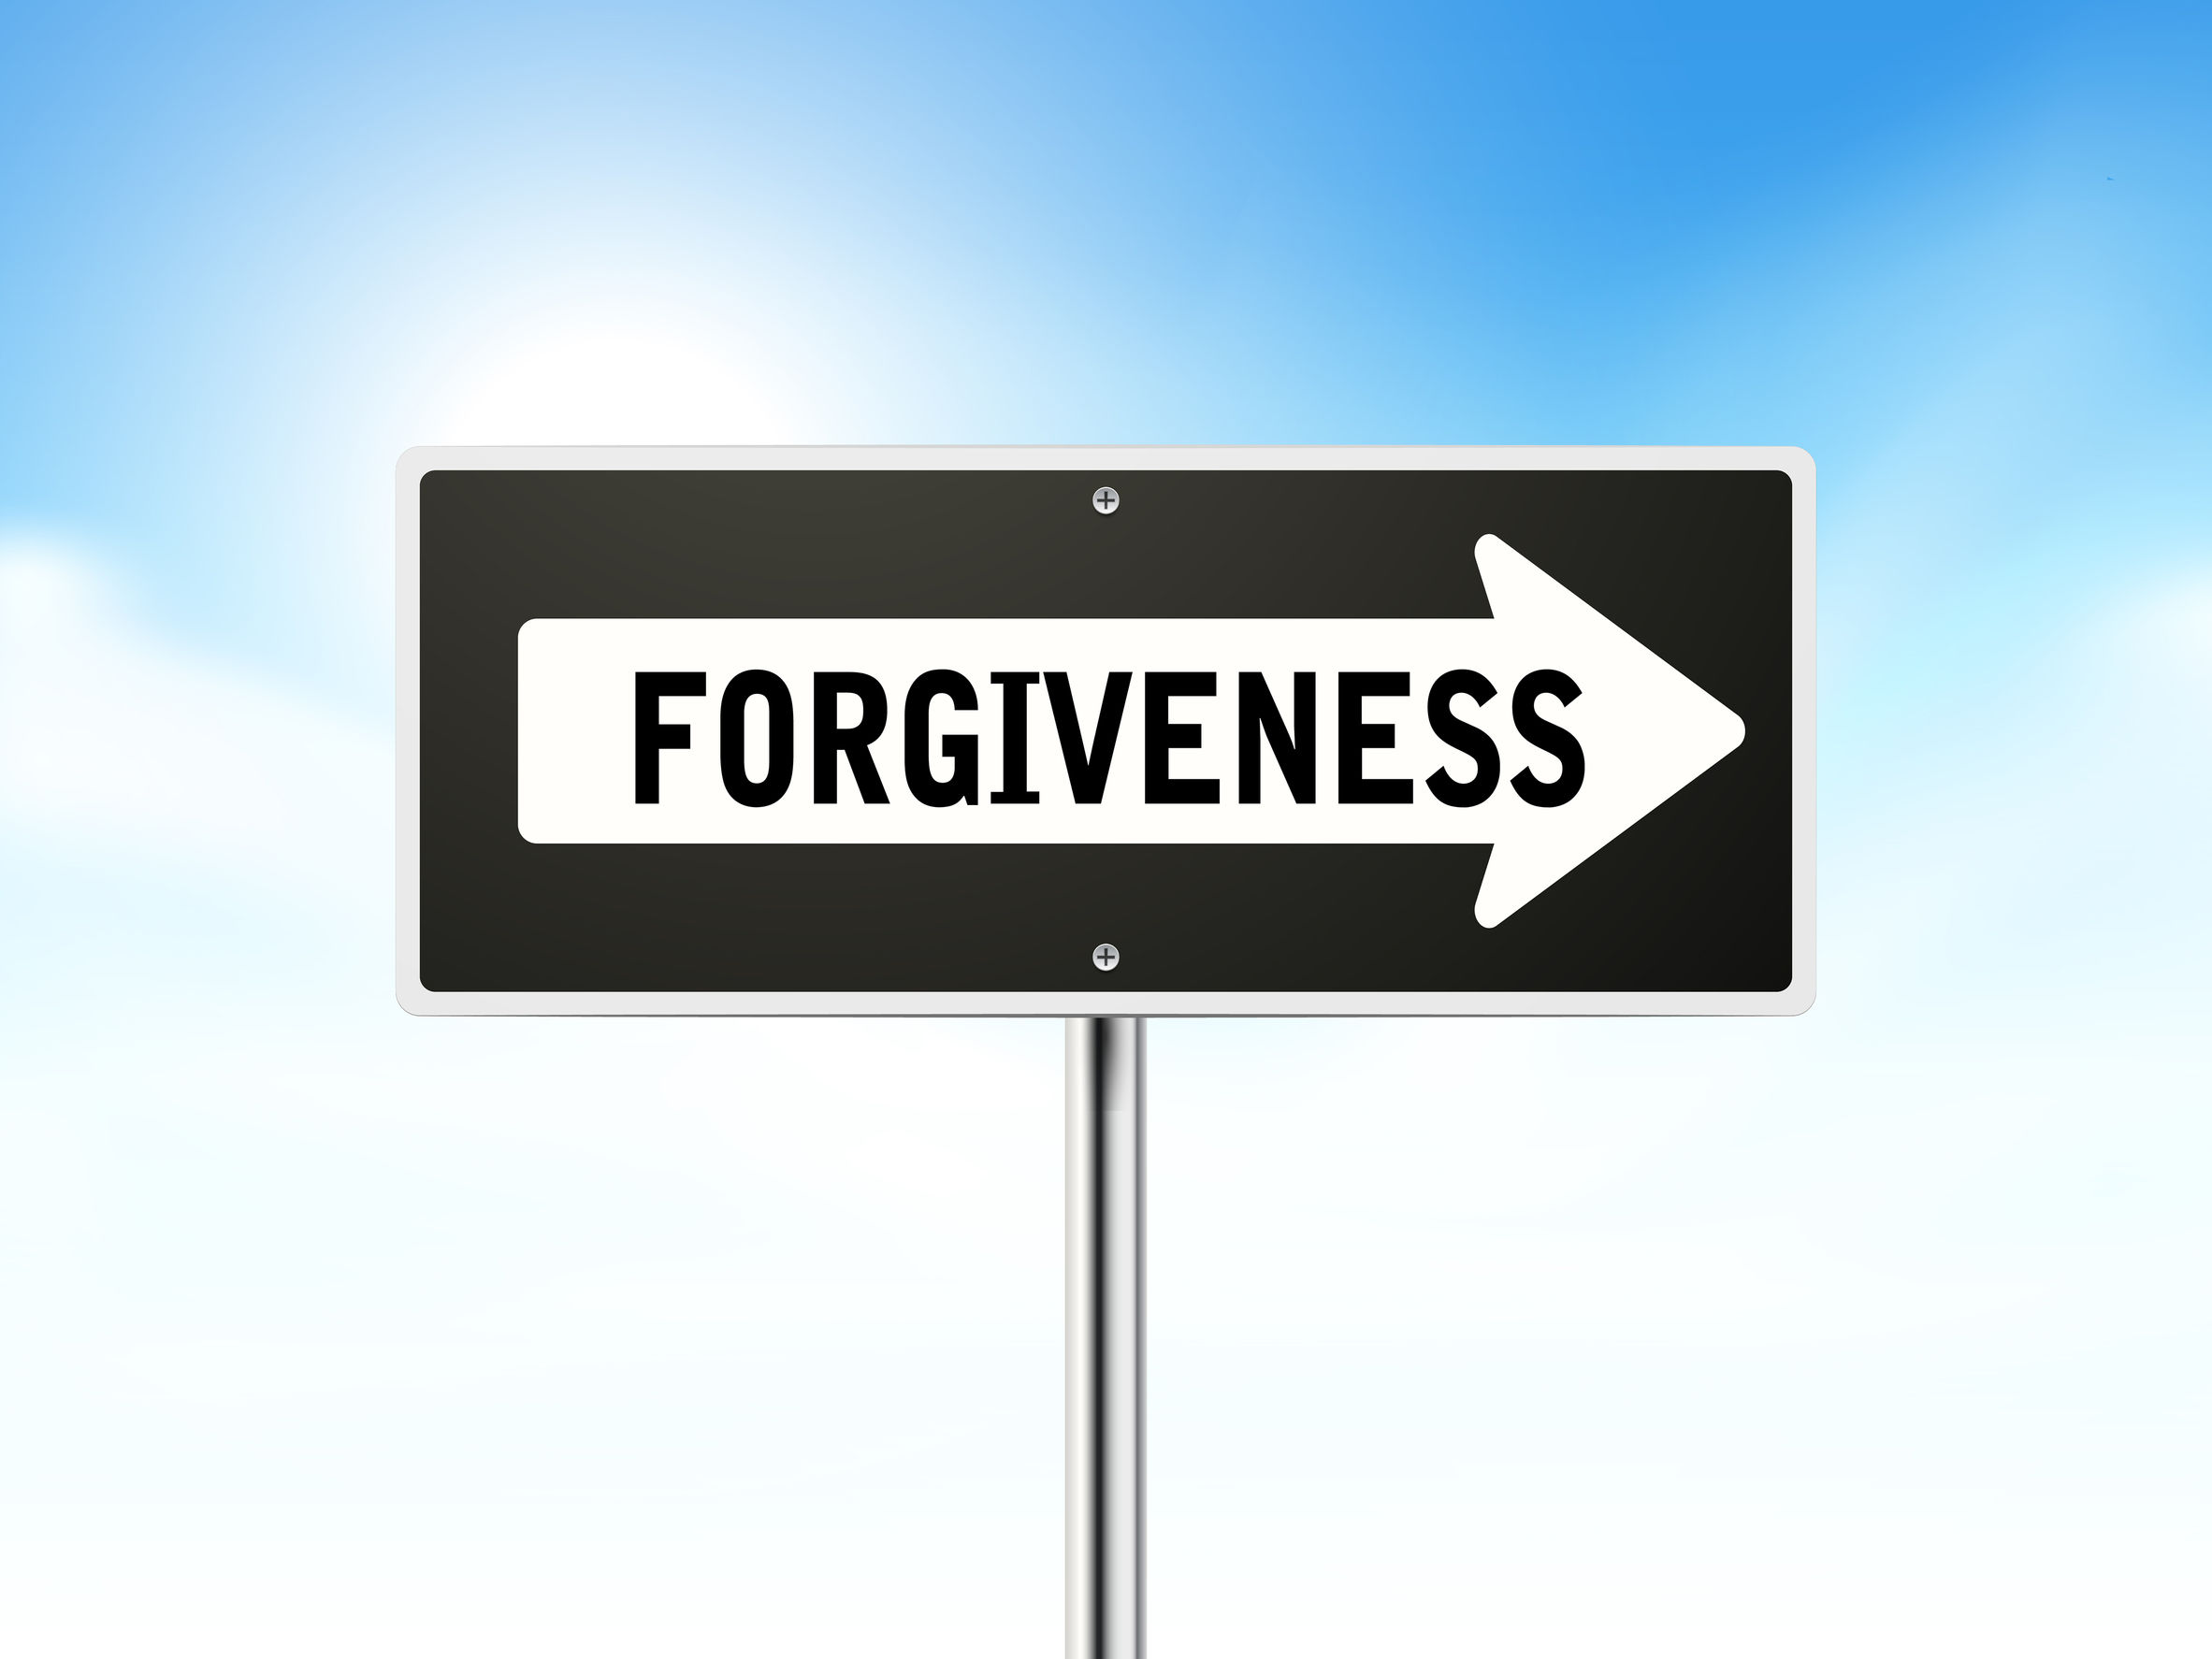 Why Do We Resist Forgiving?